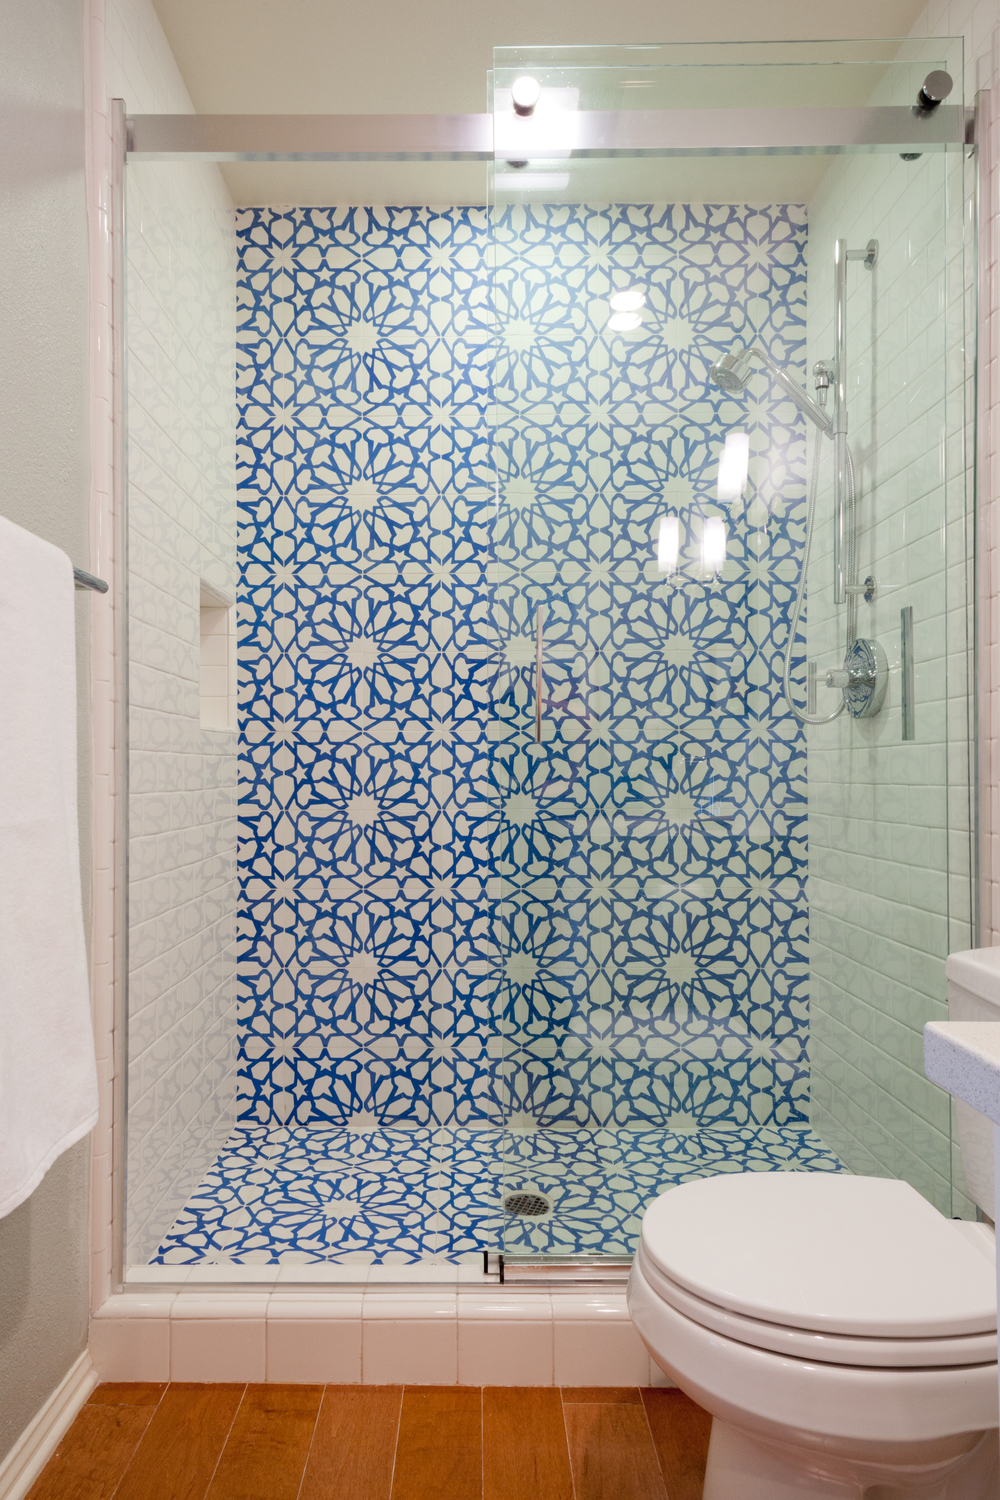 The shower after. Quite a difference.                                                                                                                                              photo by Amy Bartlam